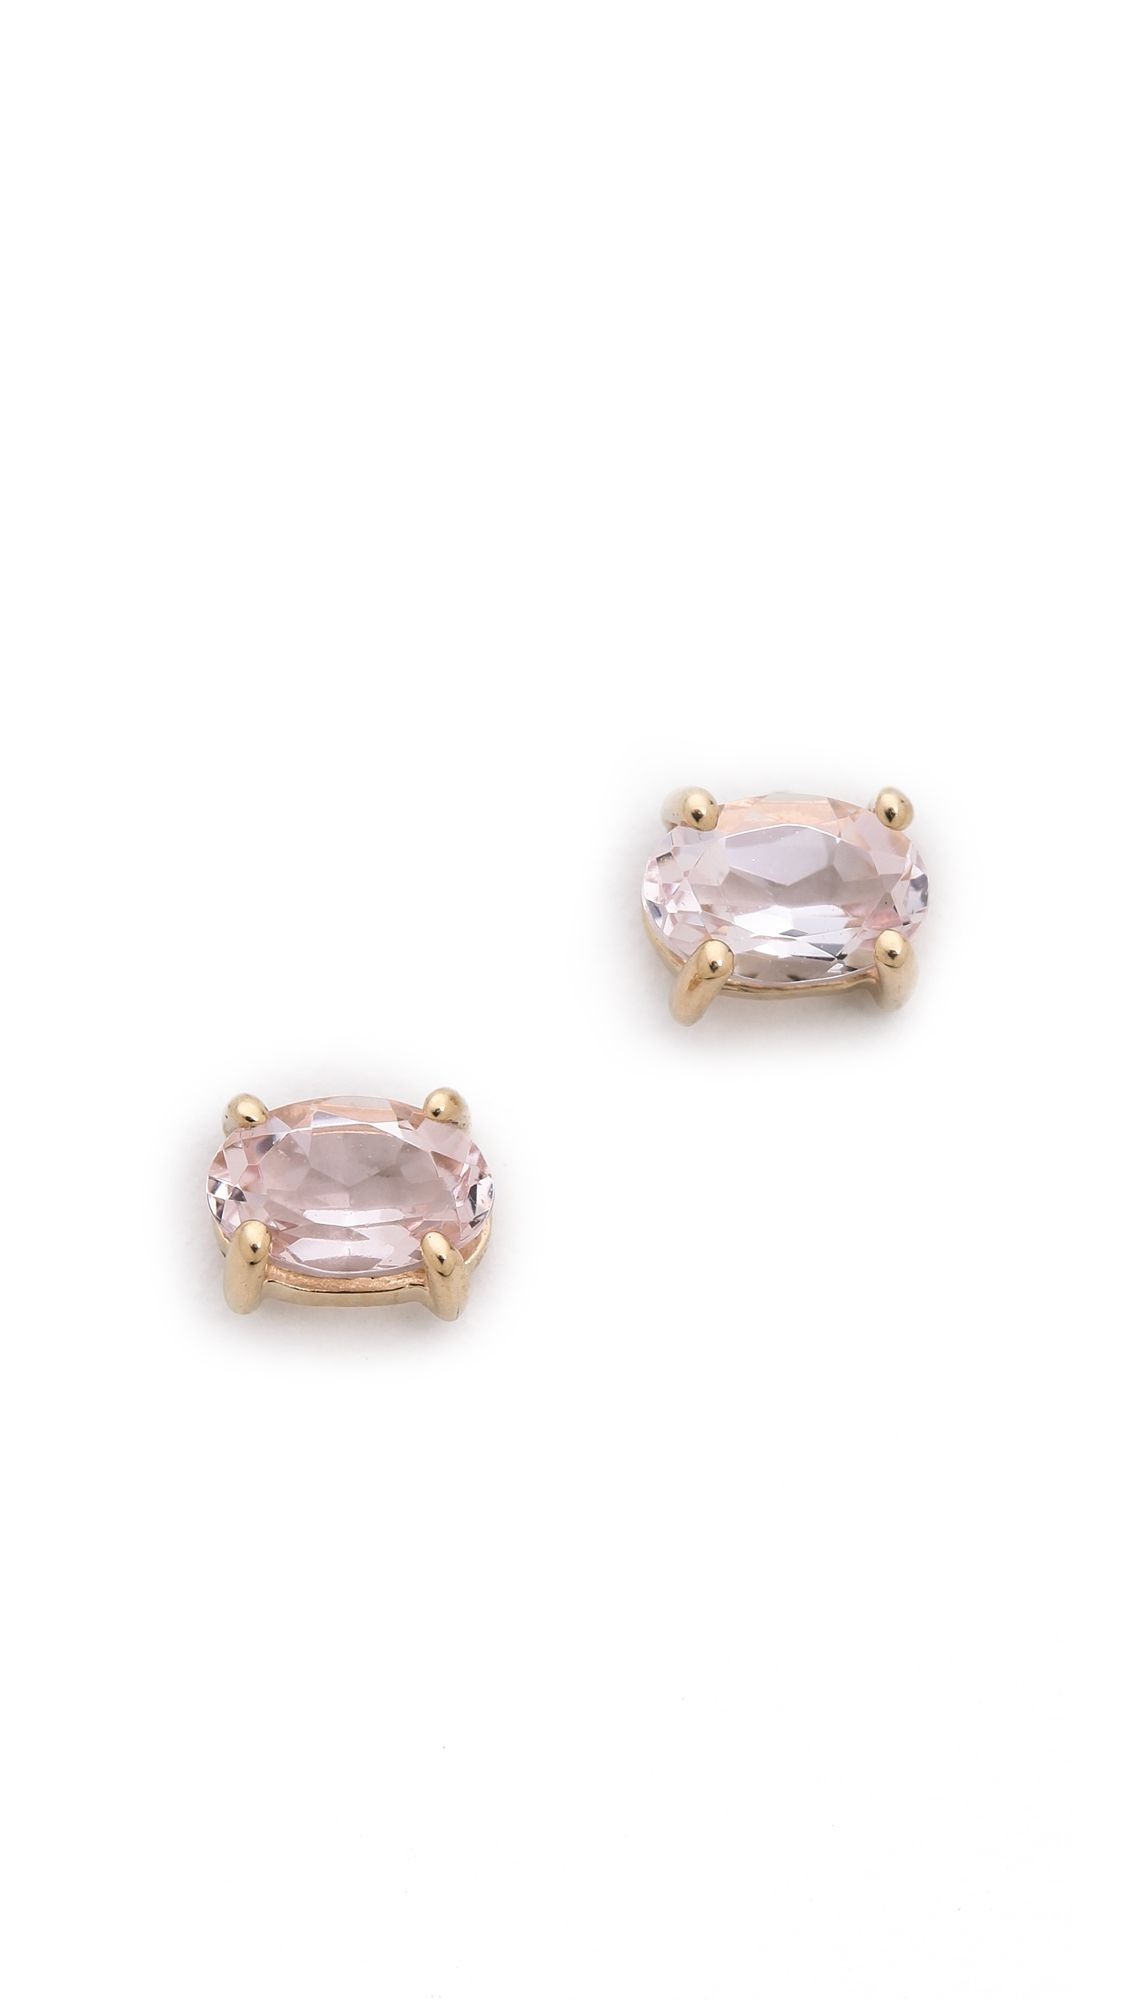 morganite pin earrings rose gold stud